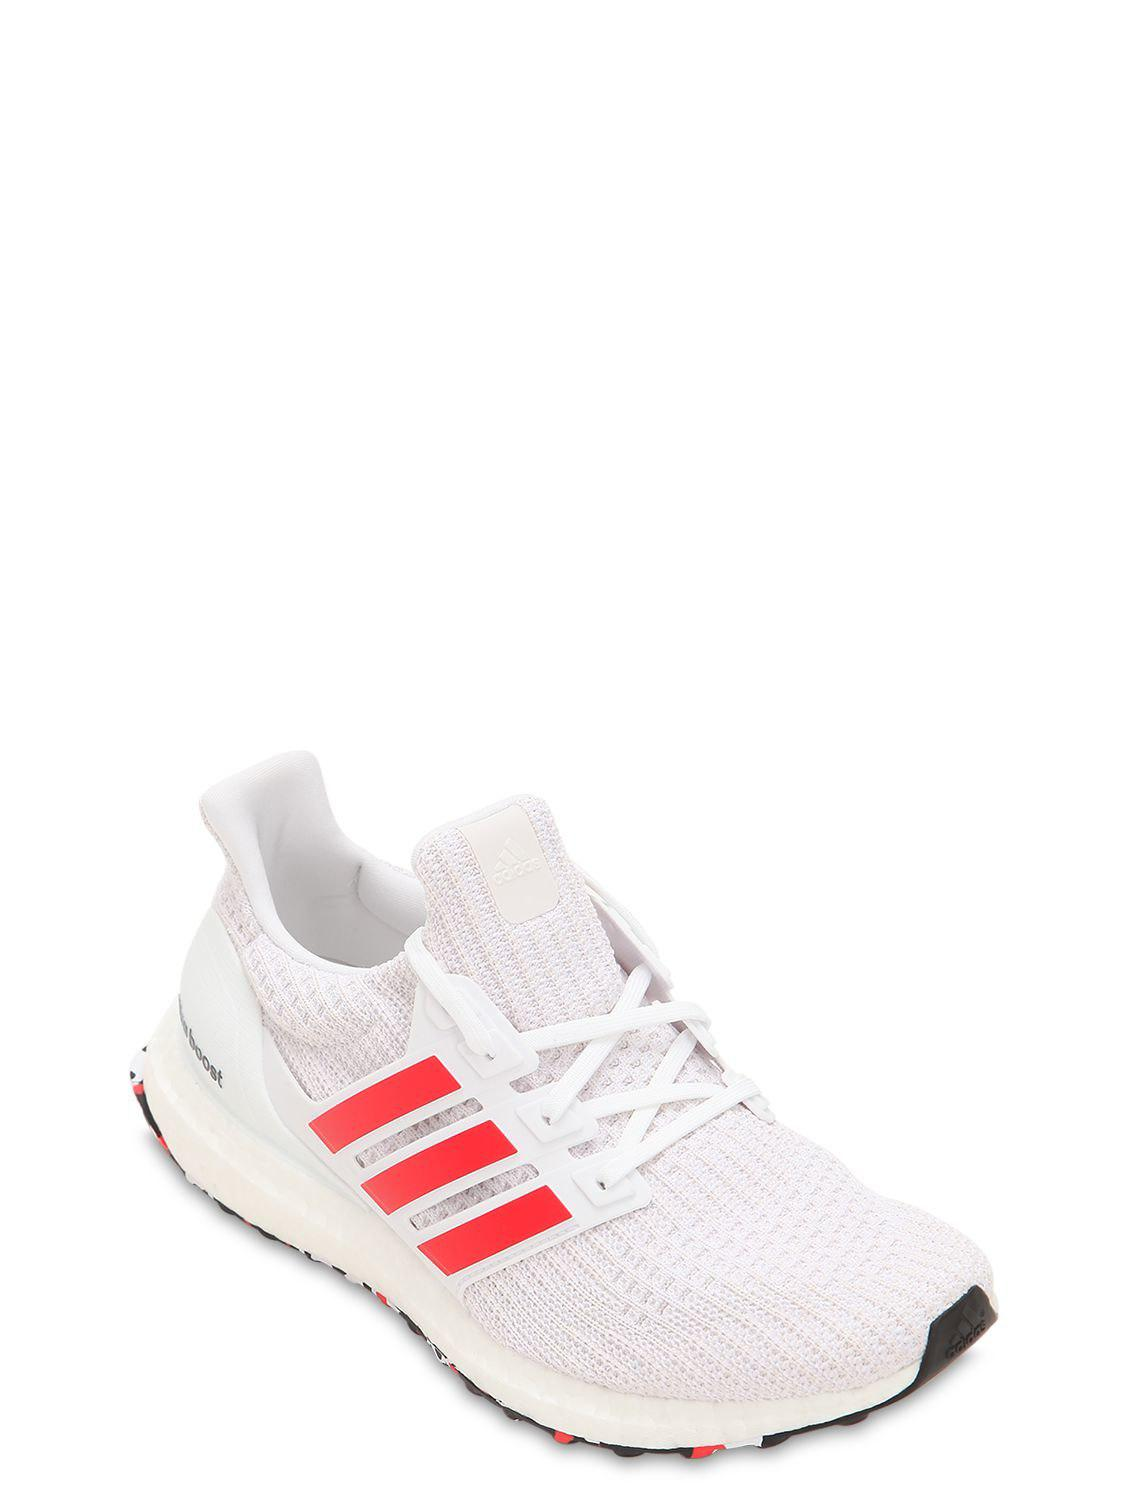 873354f10 Lyst - Adidas Originals Ultraboost Sneakers in White for Men